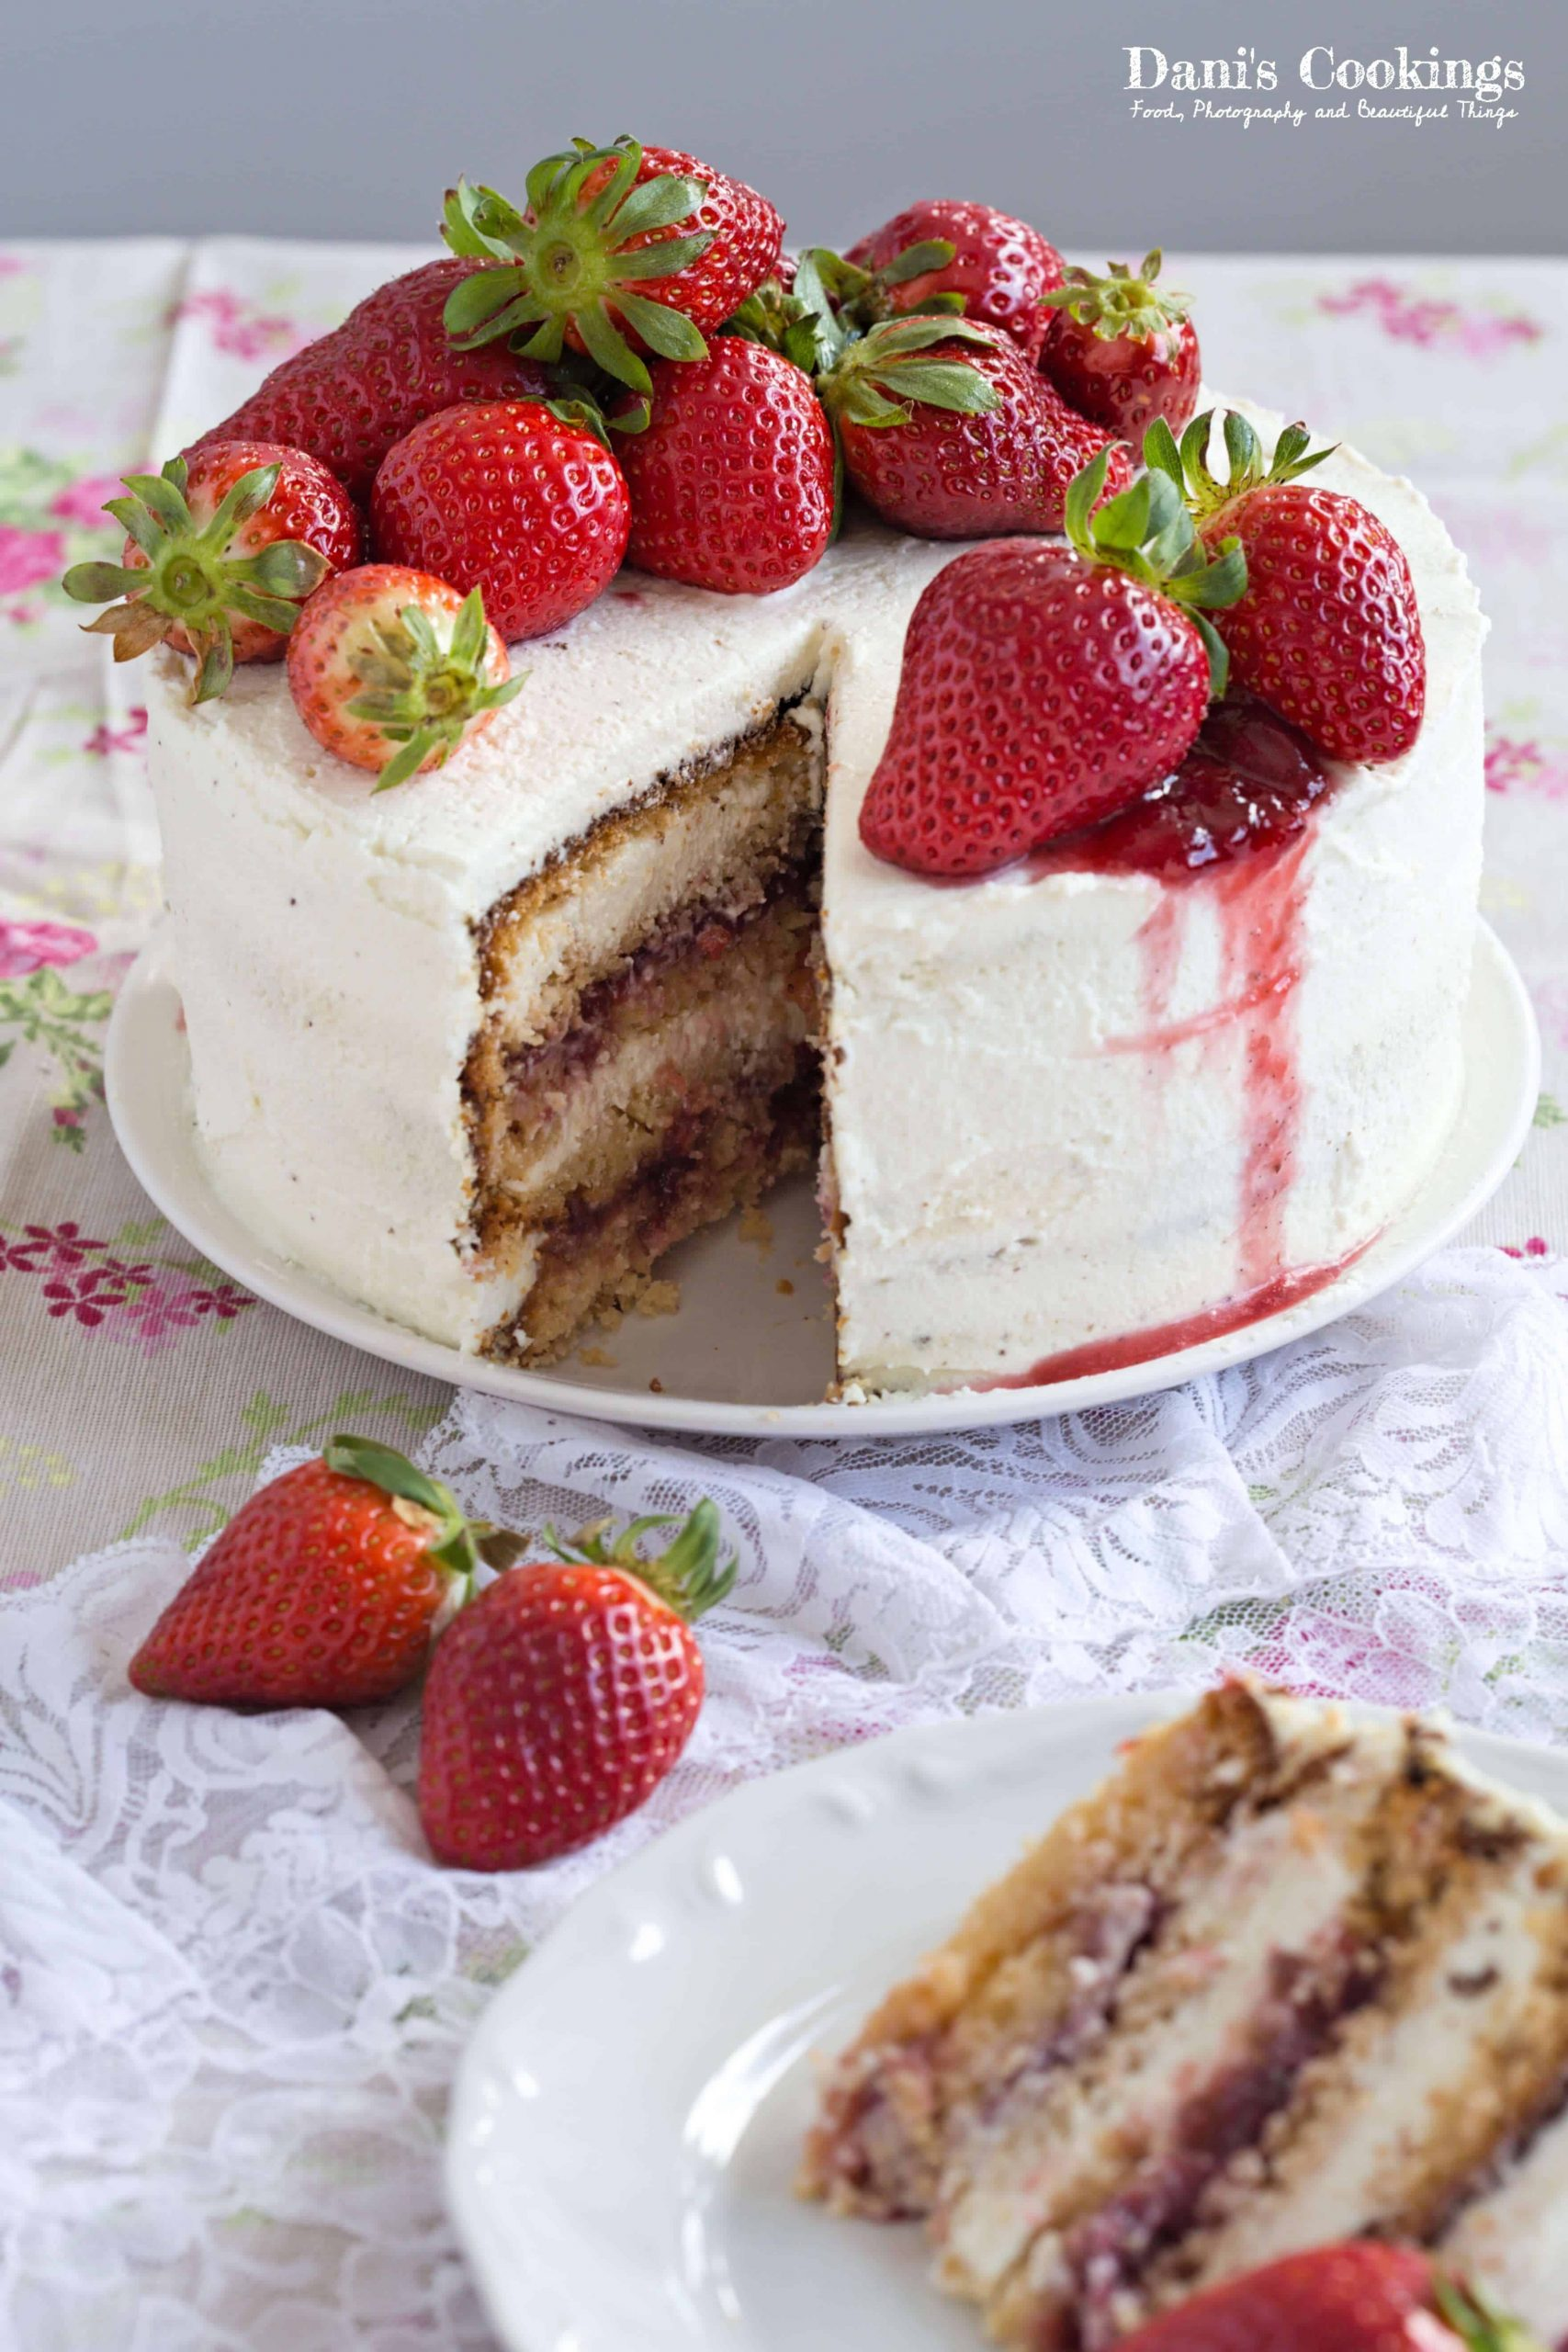 a cake with strawberries and jam on top